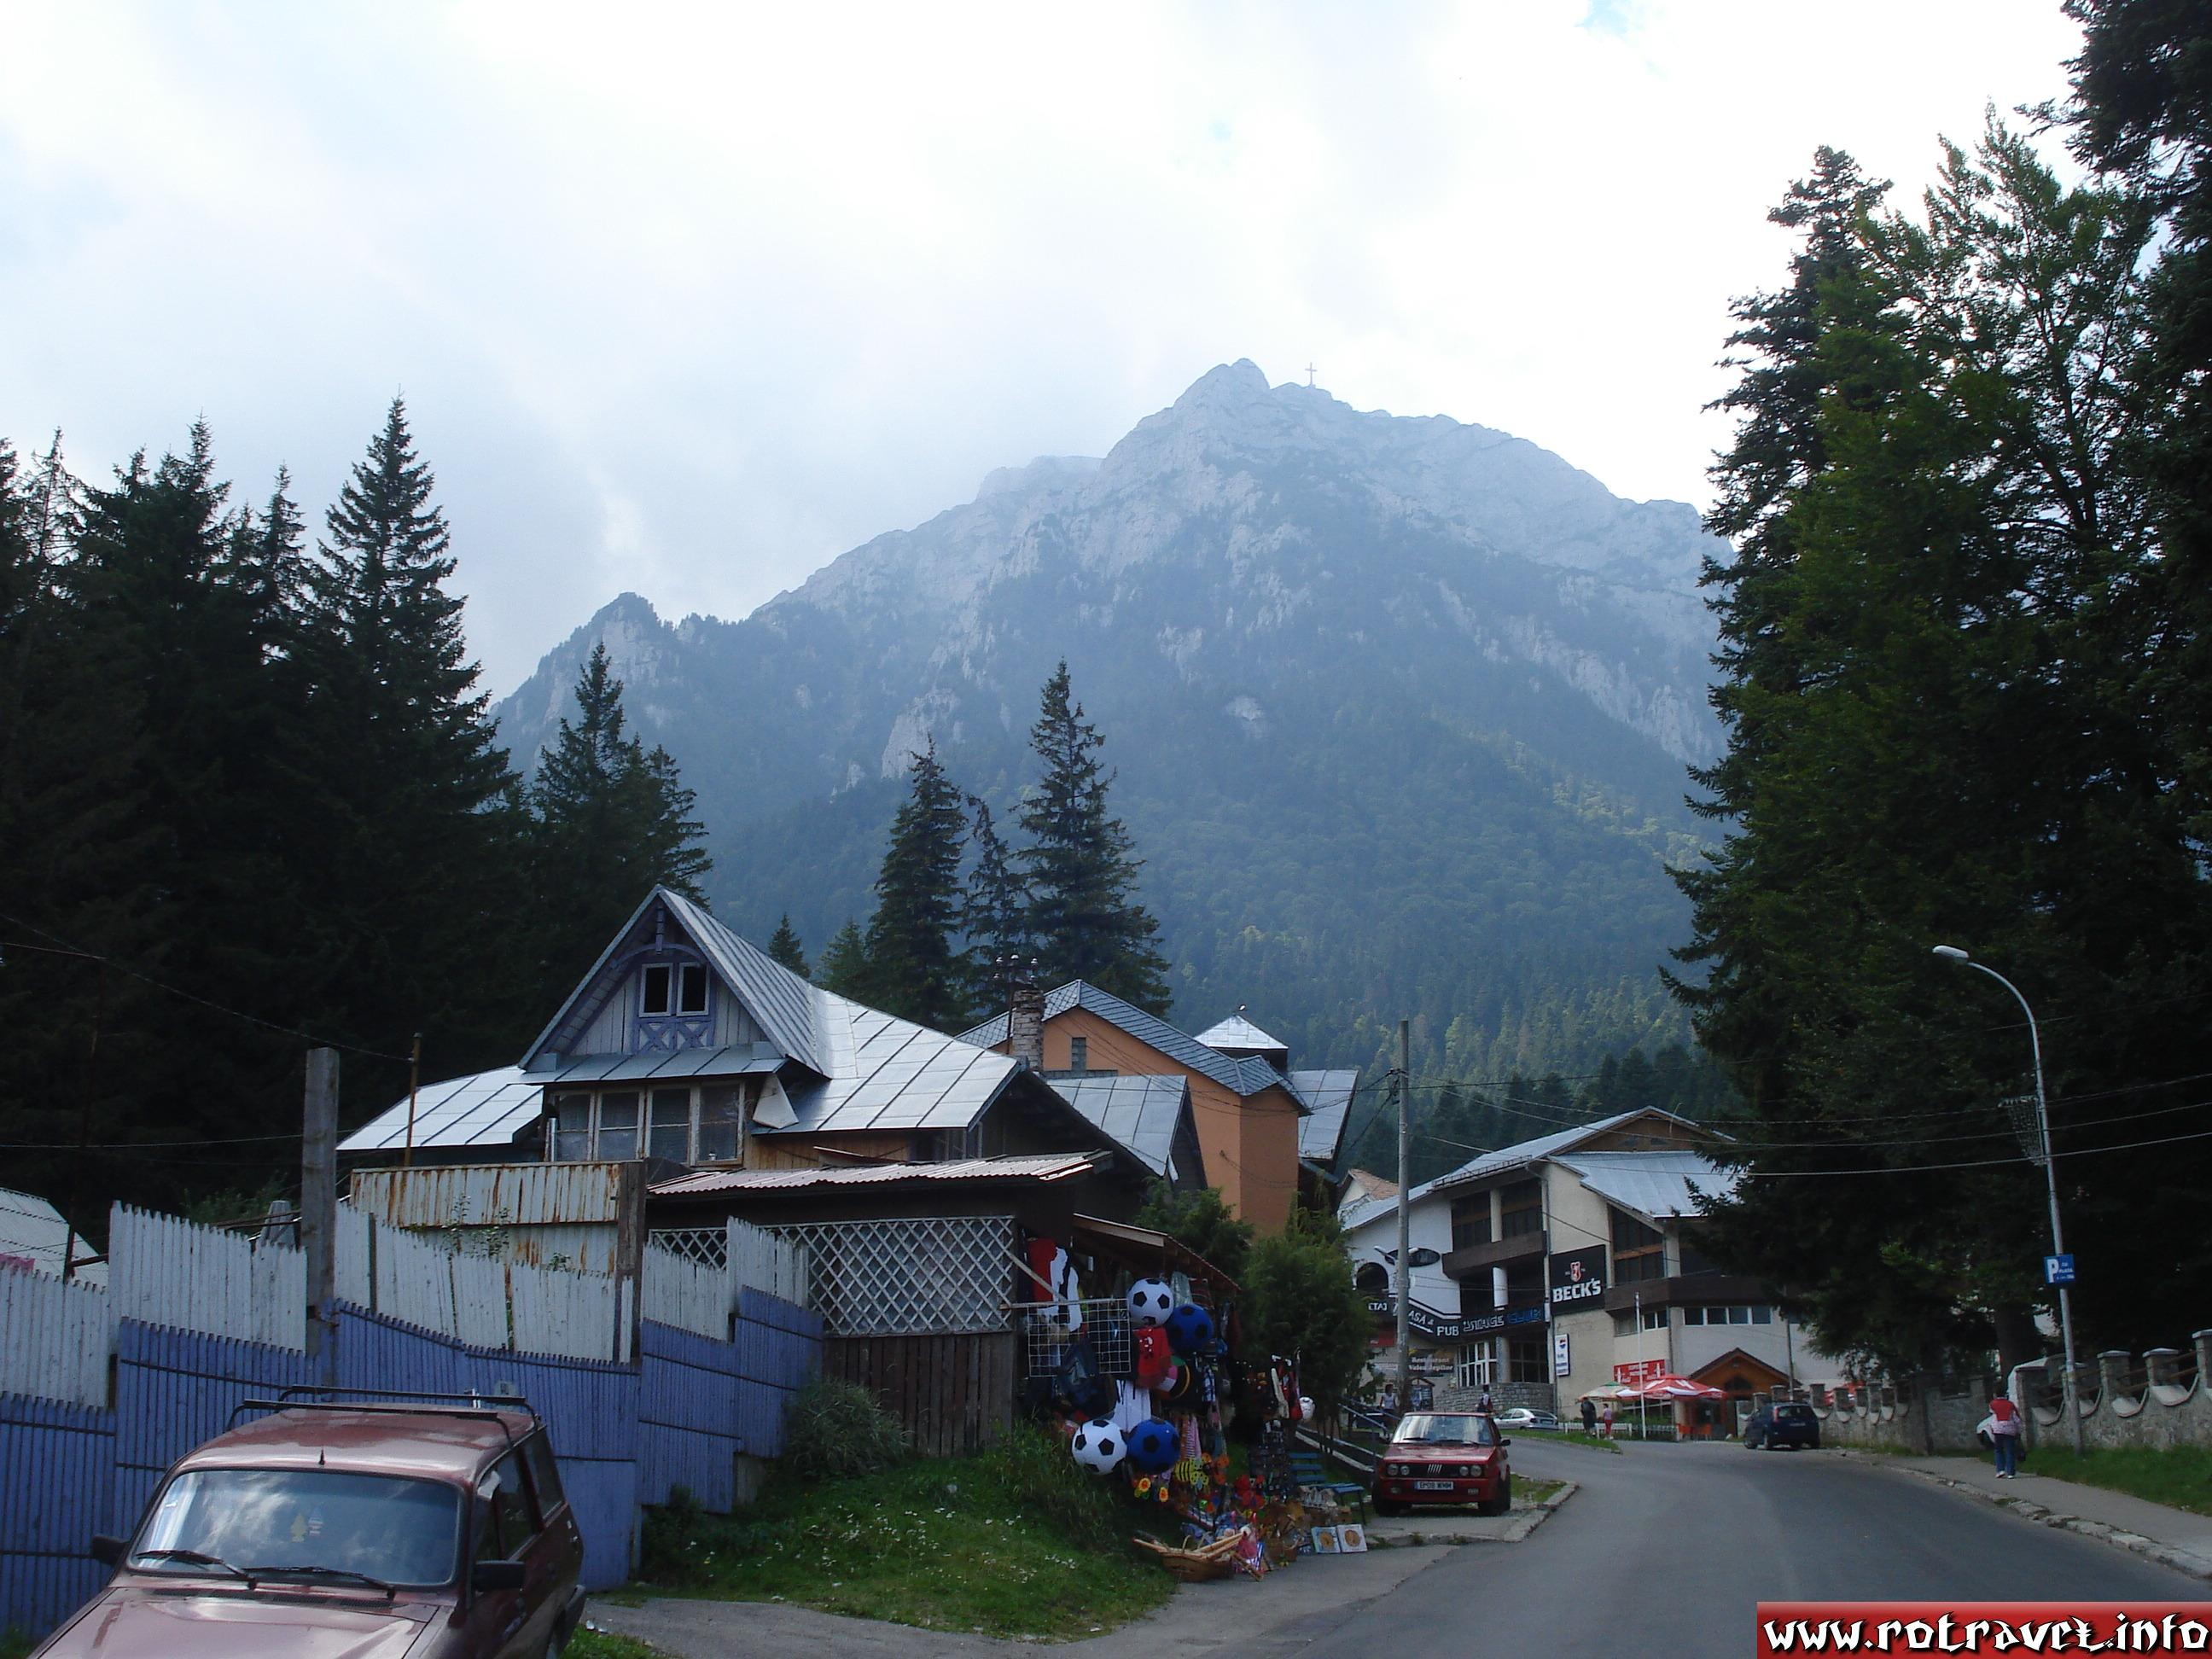 On the road which goes to gondola lift.Here you can find a lot of arbors with traditional romanian souvenirs,bars and restaurants